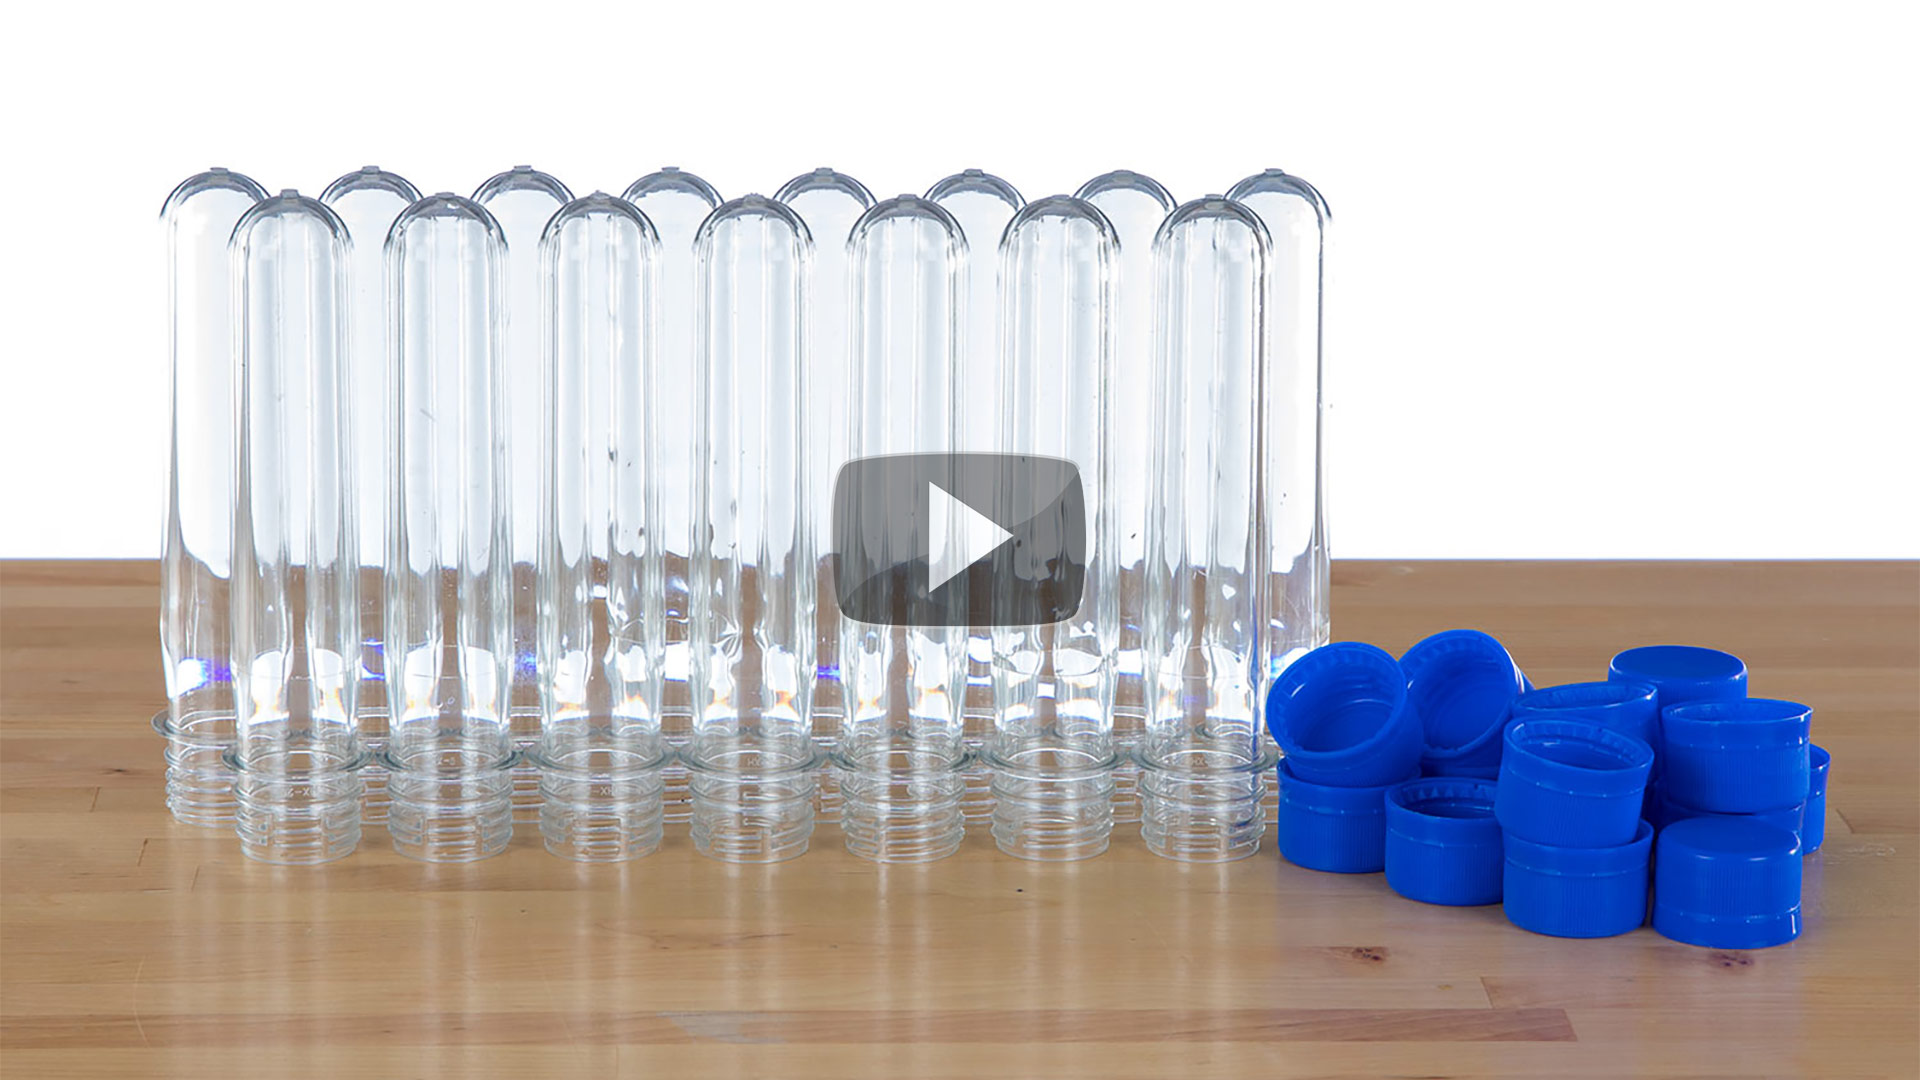 Baby Soda Bottles - World's Best Plastic test Tubes